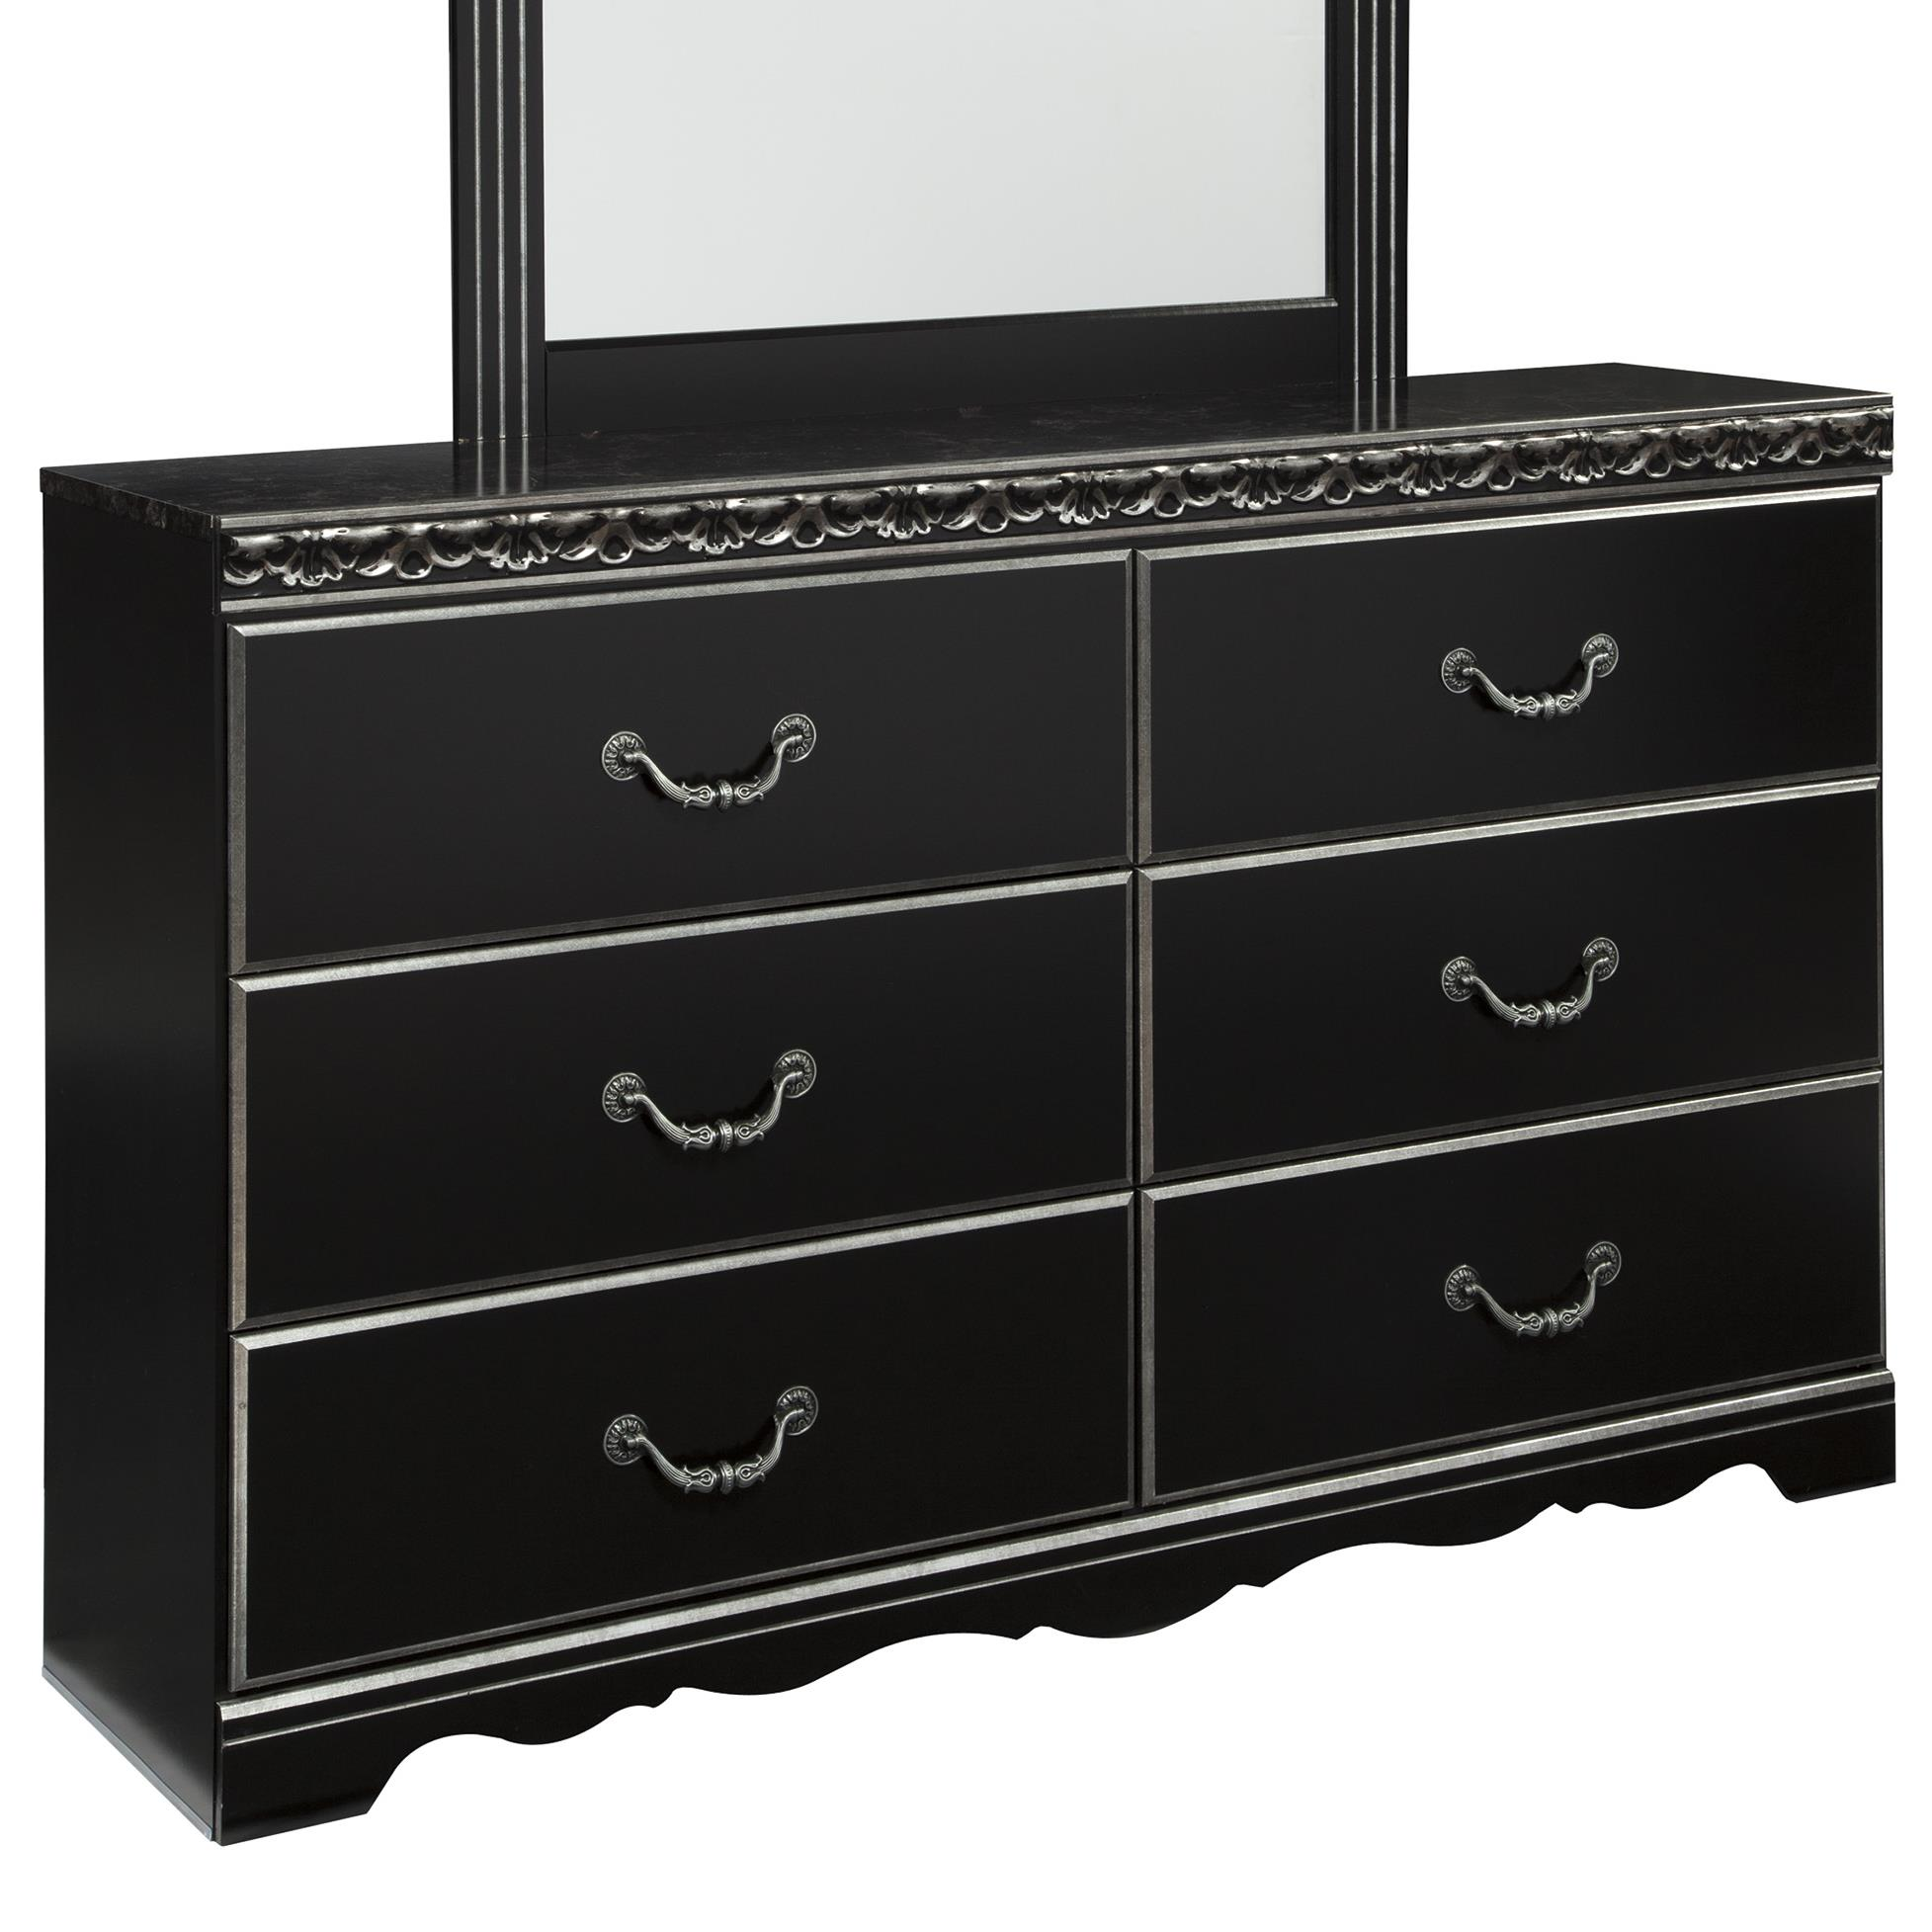 Signature Design by Ashley Navoni 6 Drawer Dresser - Item Number: B301-31